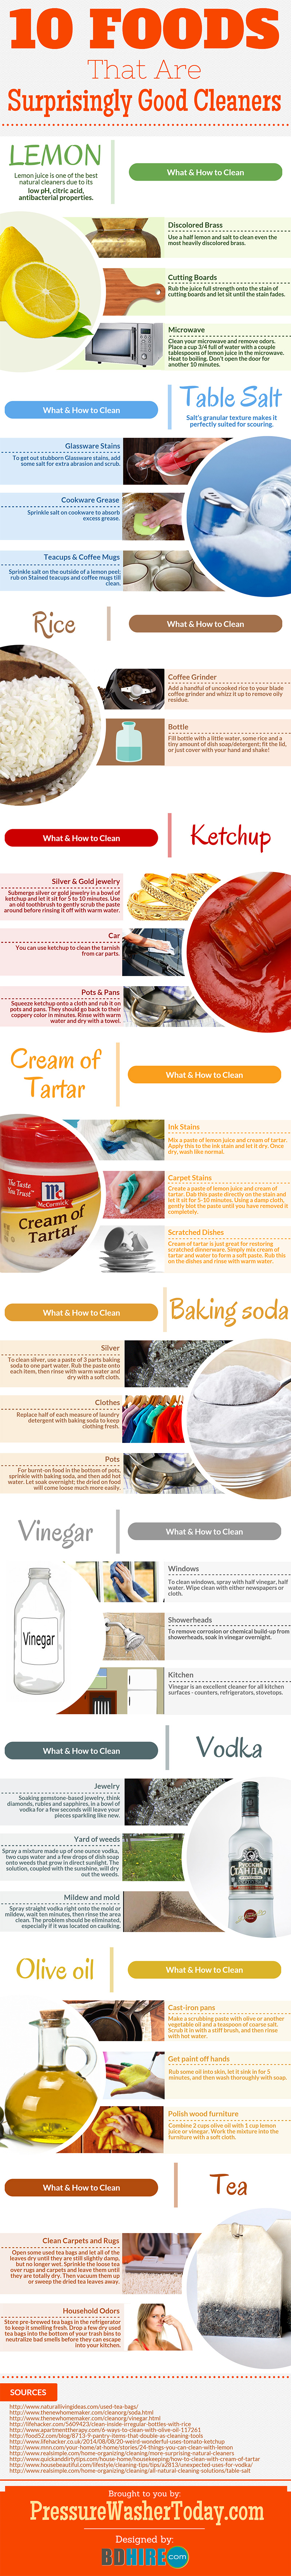 foods that are good cleaners